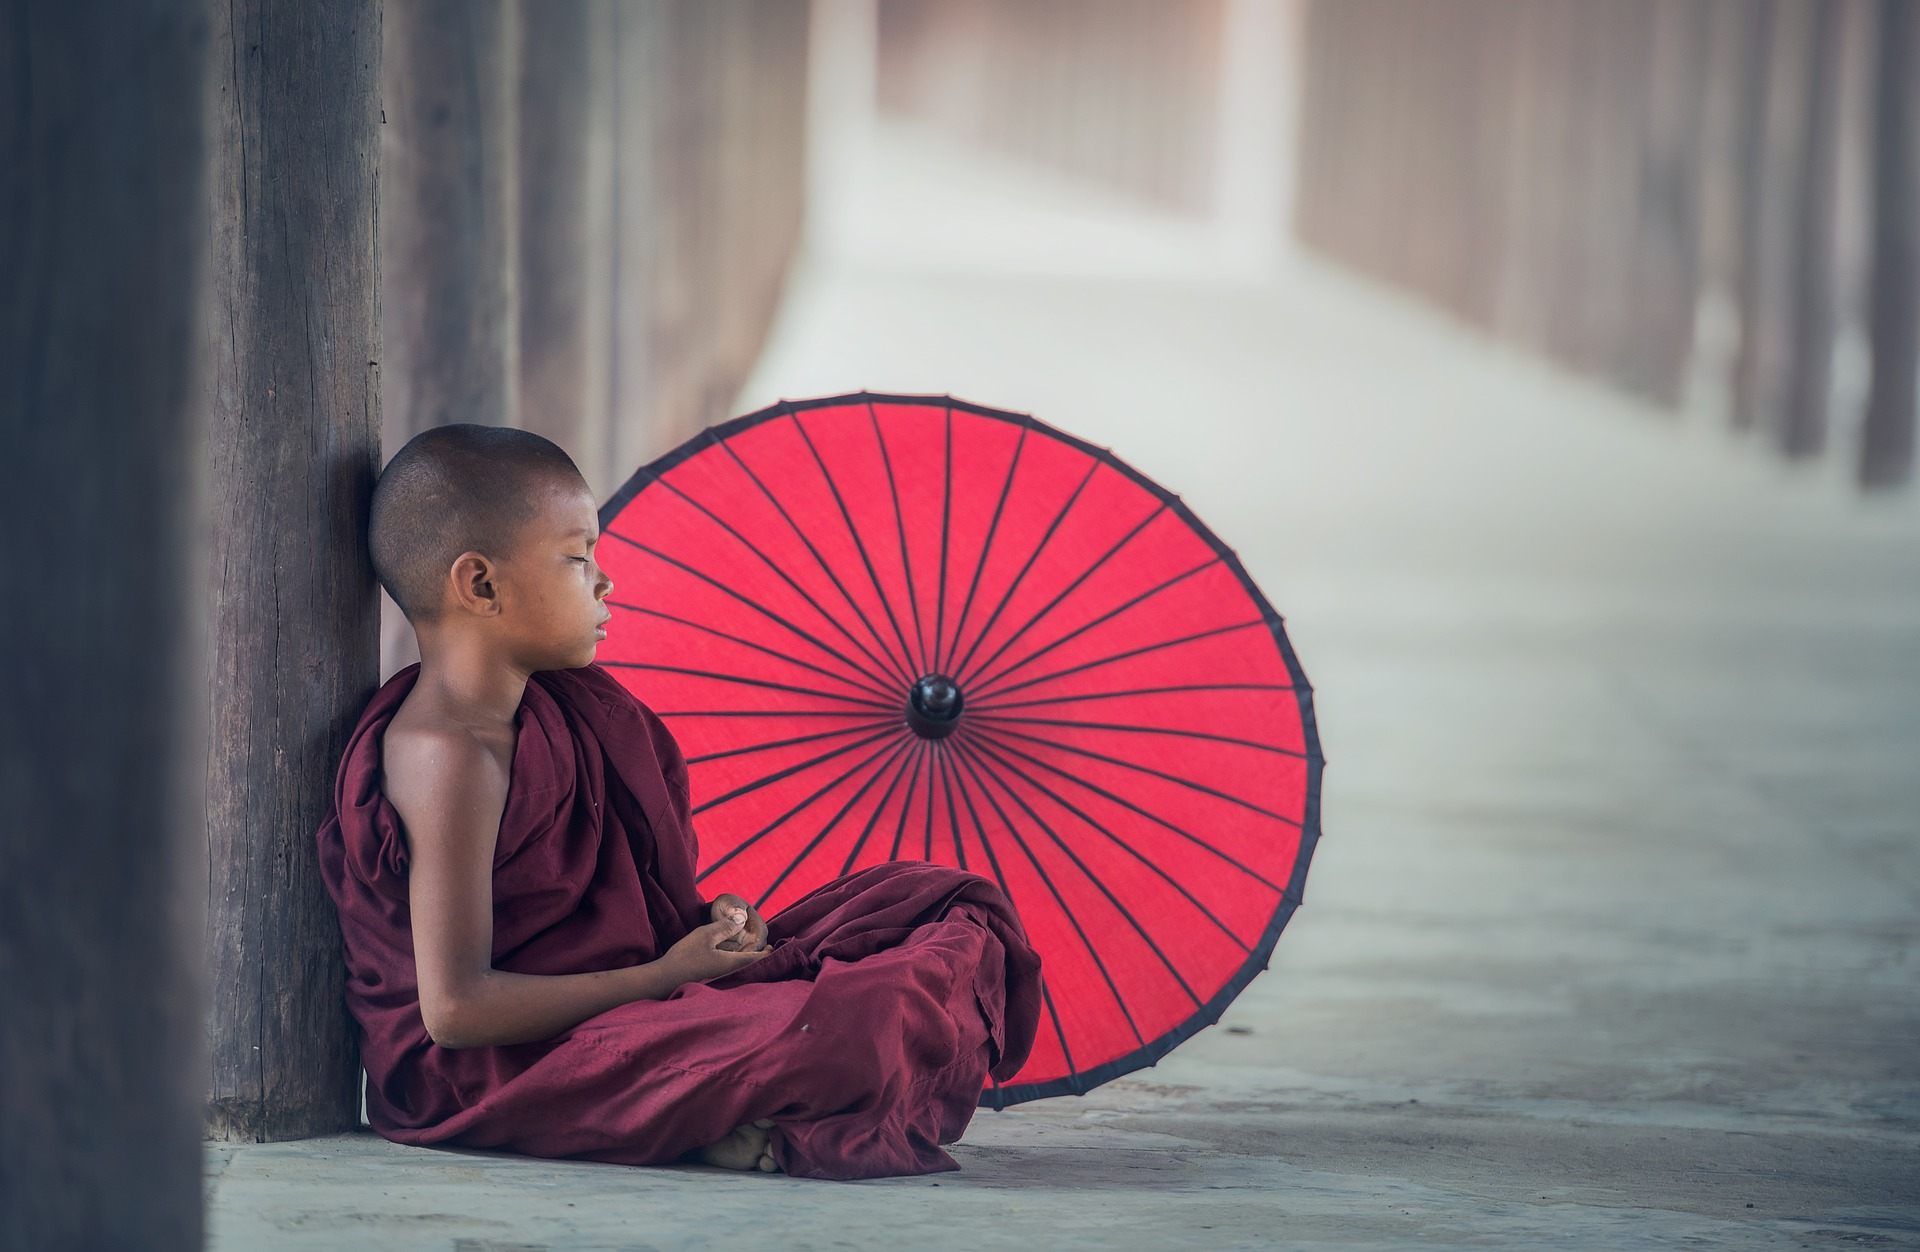 Sleeping Kid, Activity, Child, Human, Monk, HQ Photo